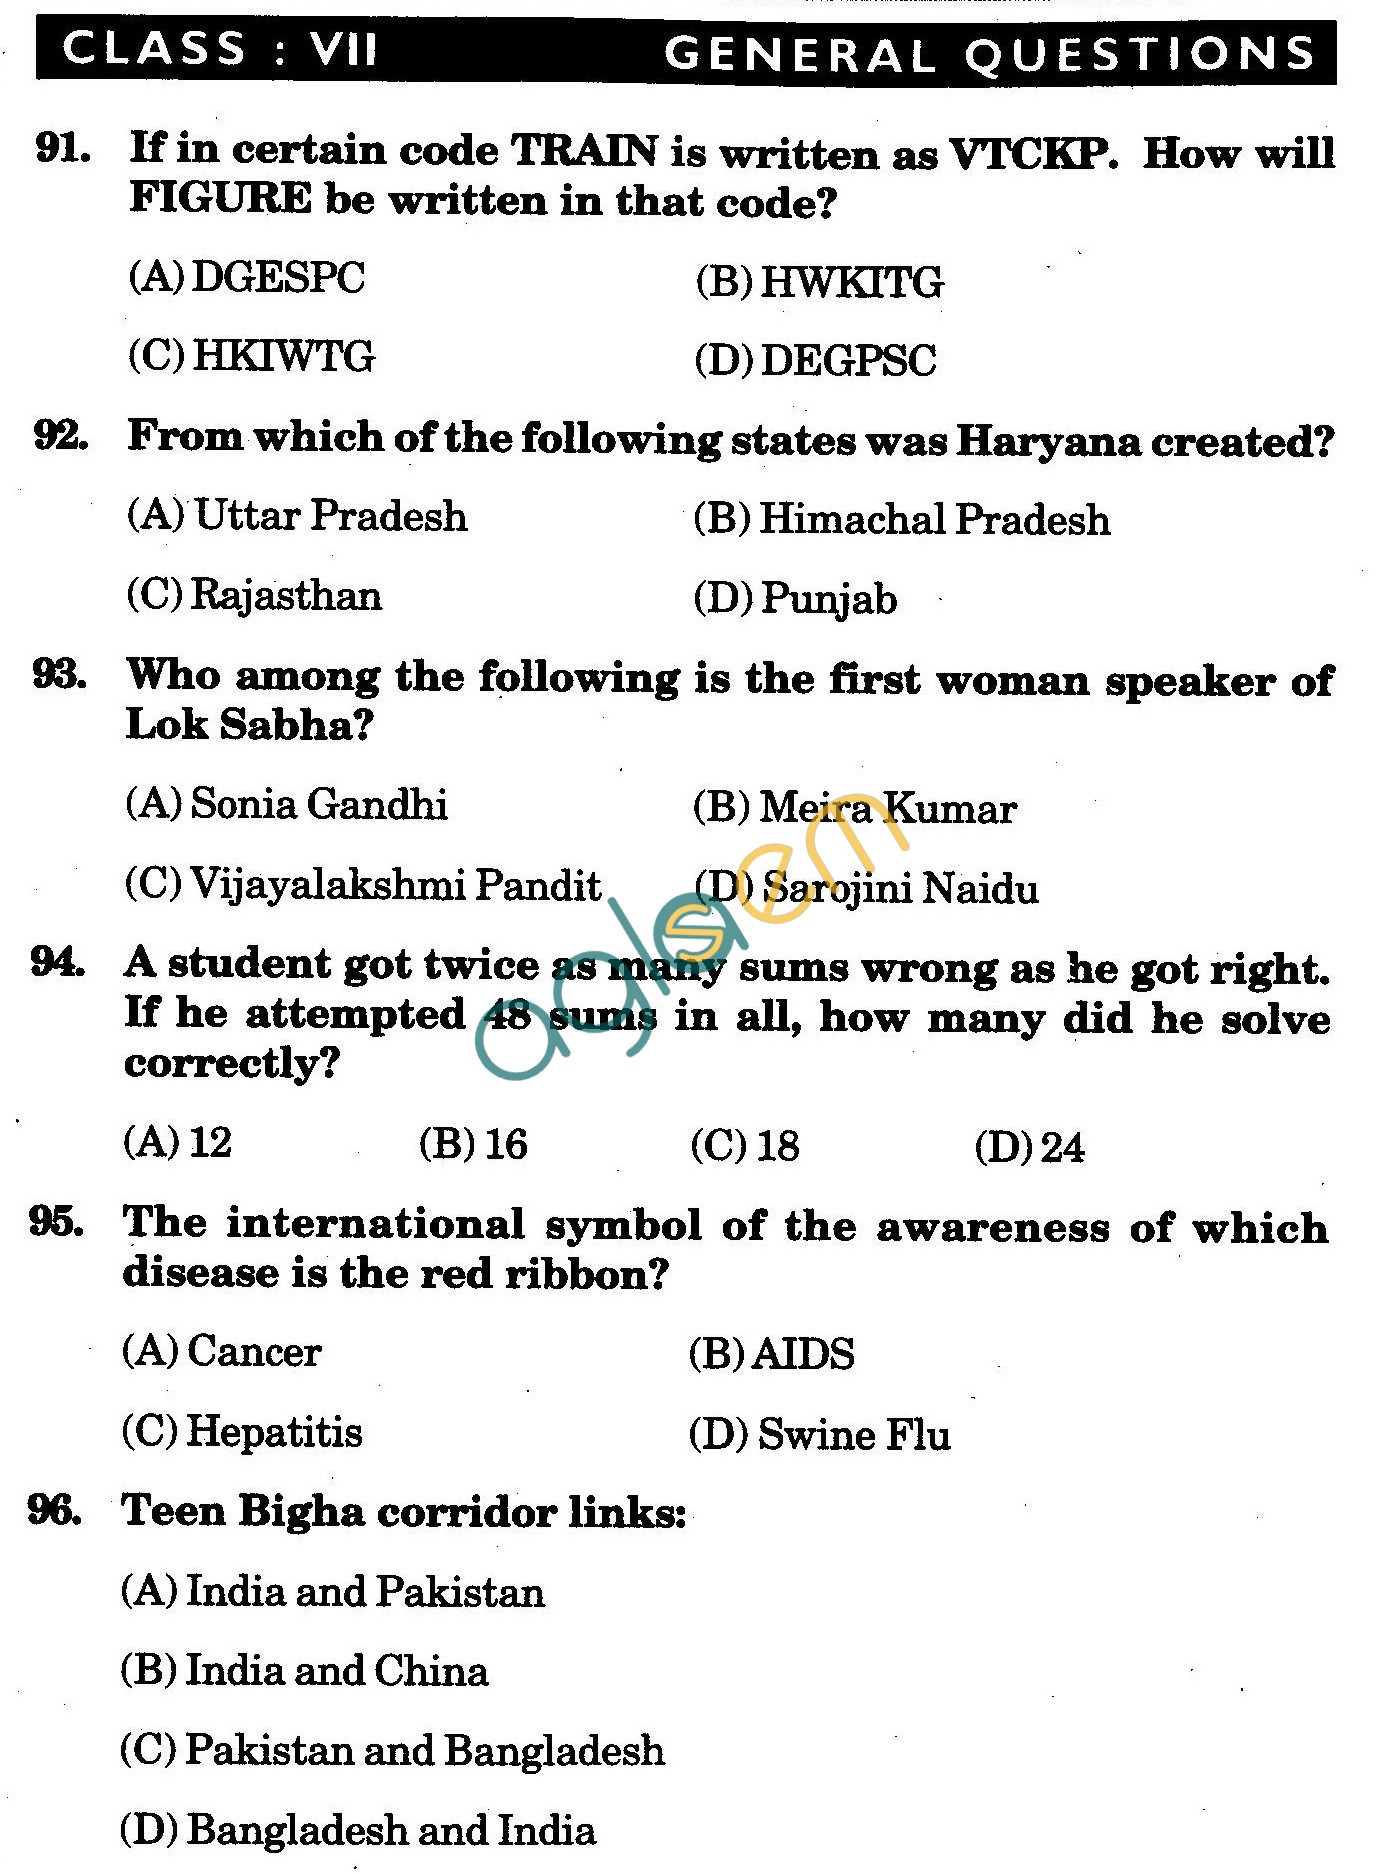 NSTSE 2010 Class VII Question Paper with Answers - General Knowledge